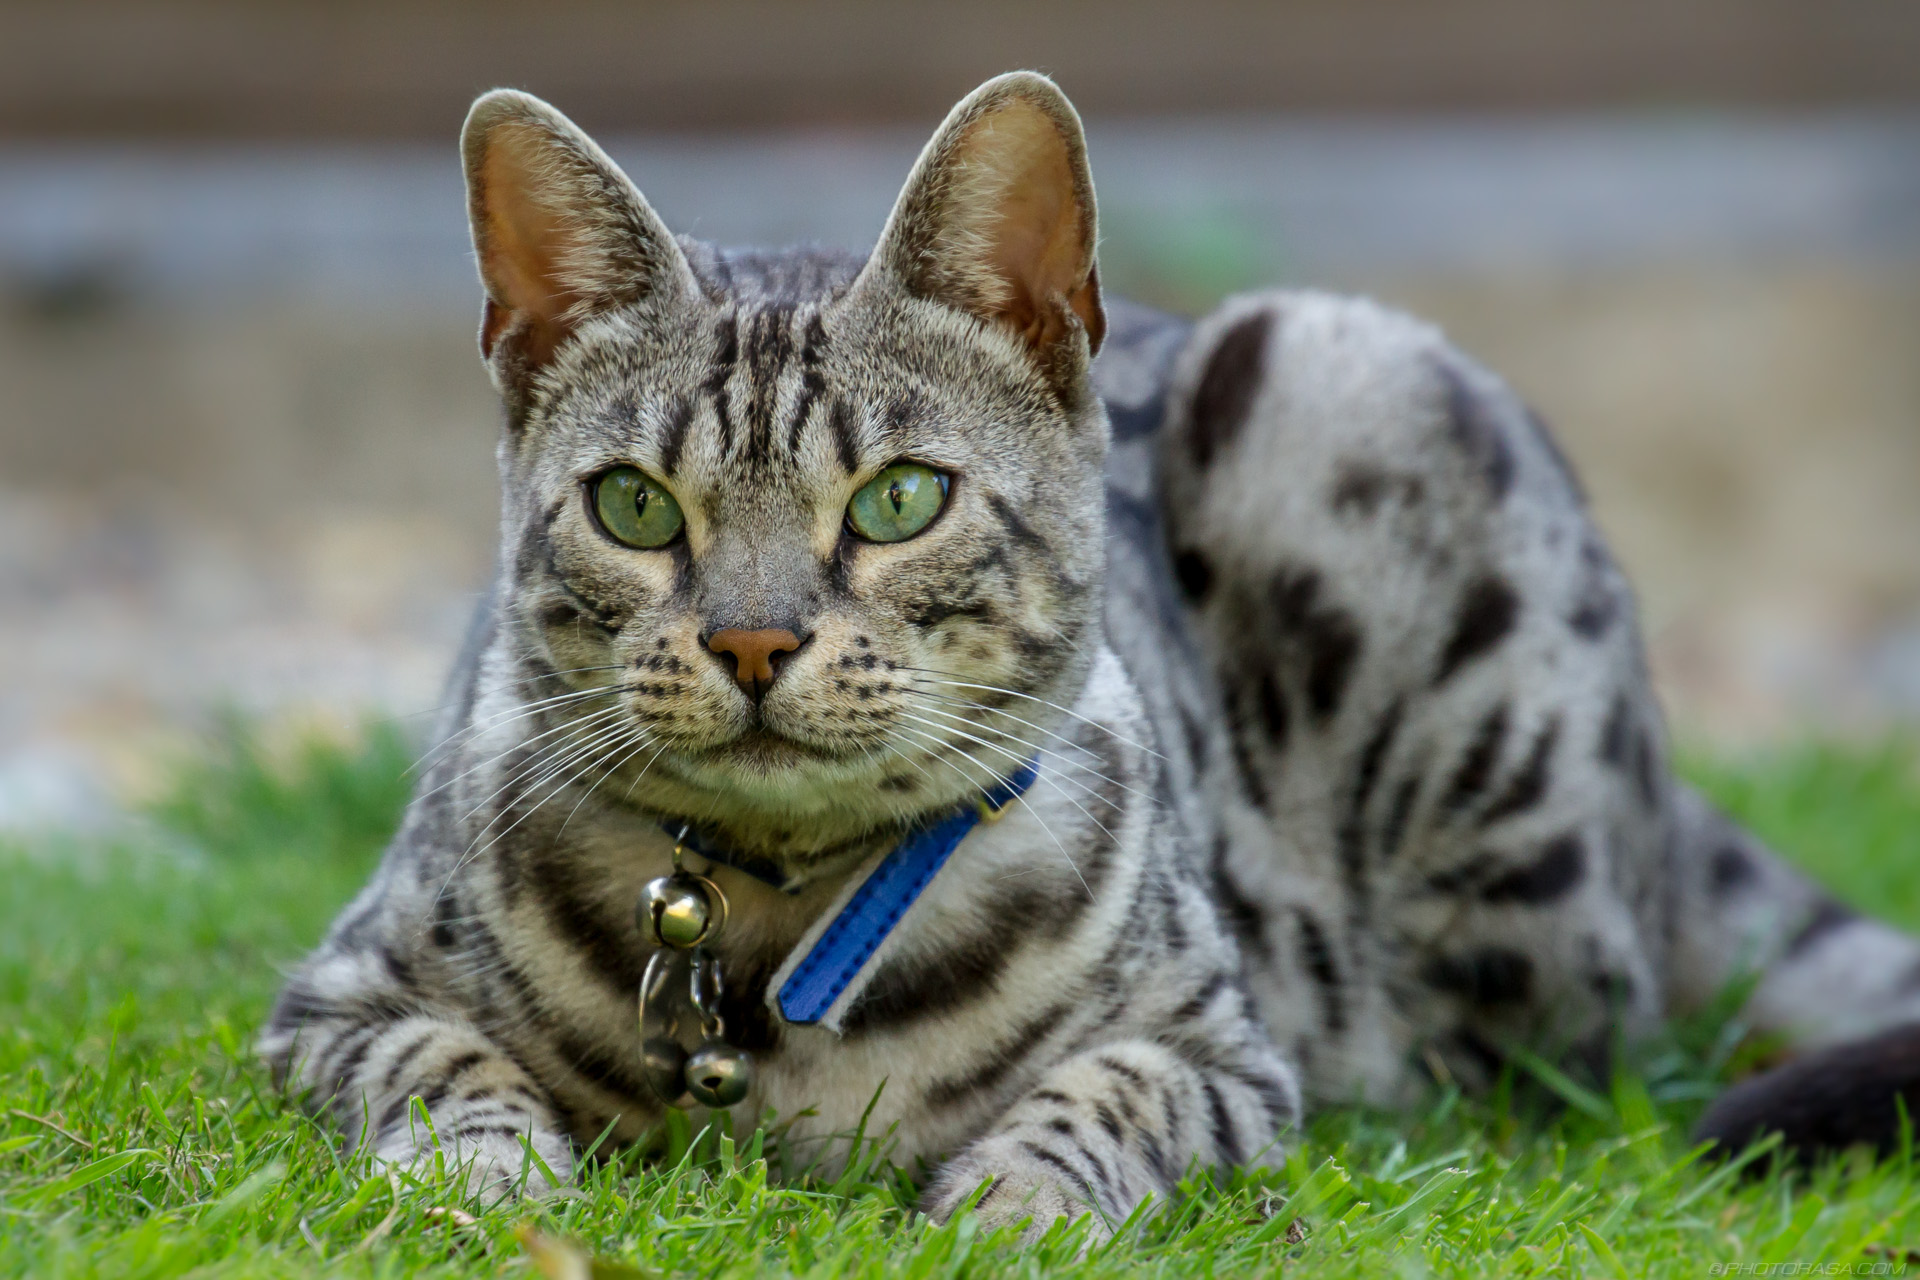 http://photorasa.com/silver-tabby-cat/silver-tabby-cat-looking-into-the-distance/